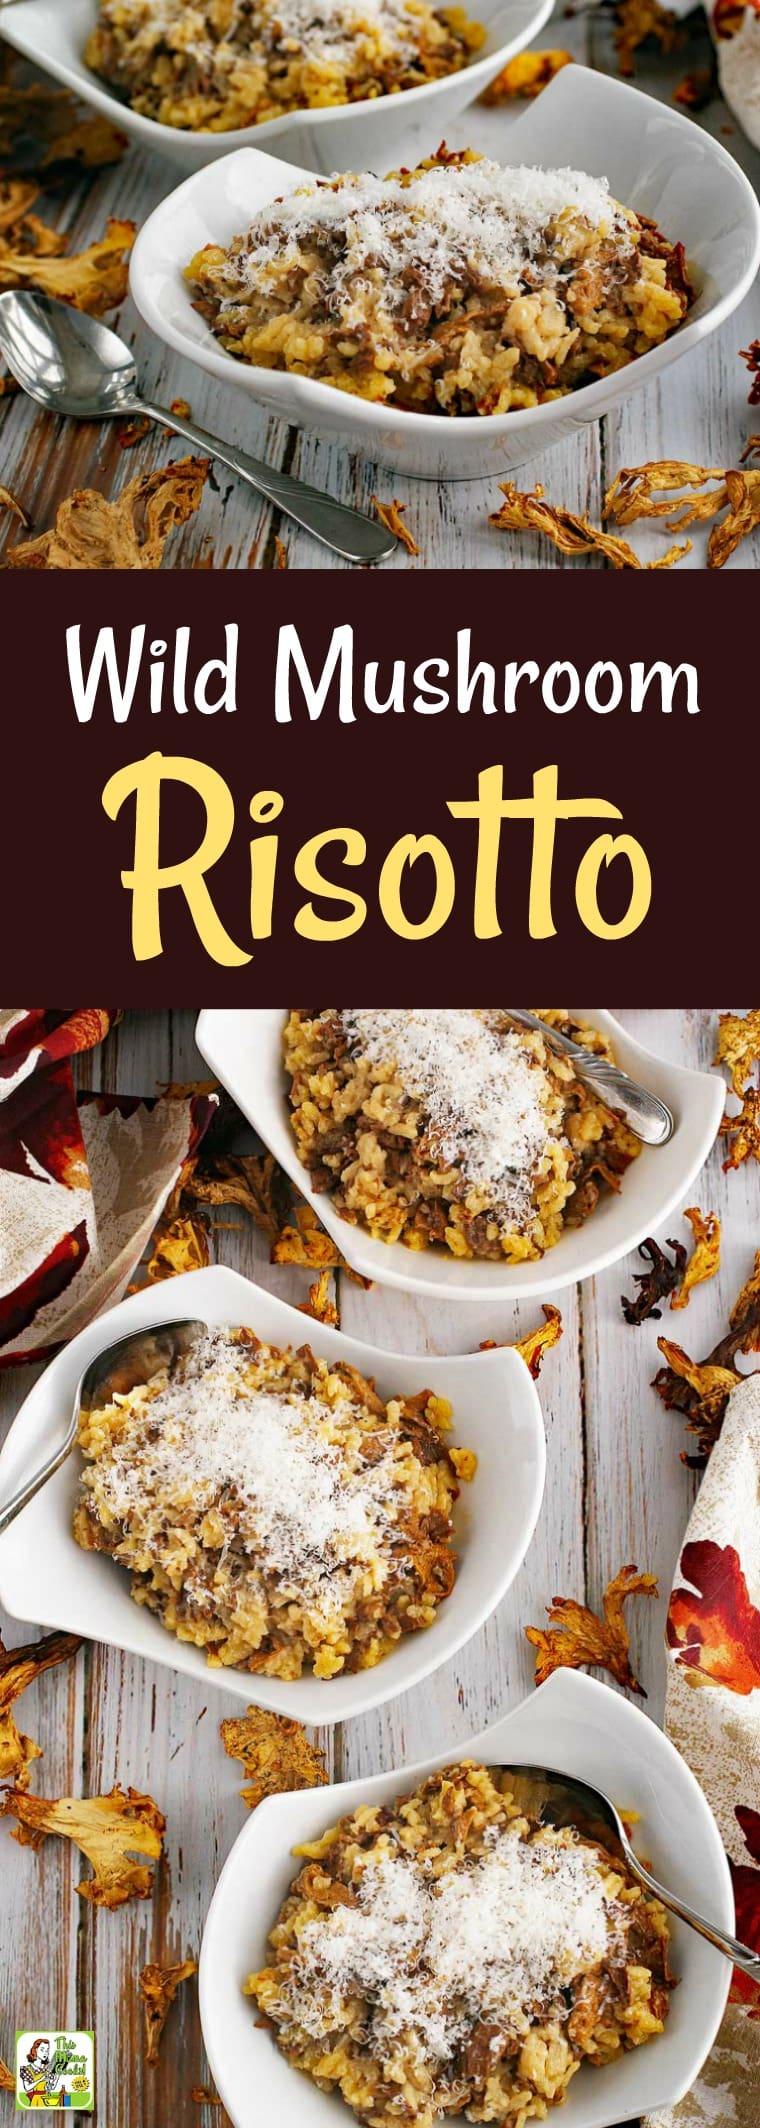 Searching for easy risotto recipes? Then you'll love this Wild Mushroom Risotto dish. My easy risotto doesn\'t have to be continuously stirred and can be made in about 30 minutes. This easy risotto recipe is also gluten-free and can be made dairy free. #risotto #mushrooms #glutenfree #dairyfree #under30 #quickandeasy #rice